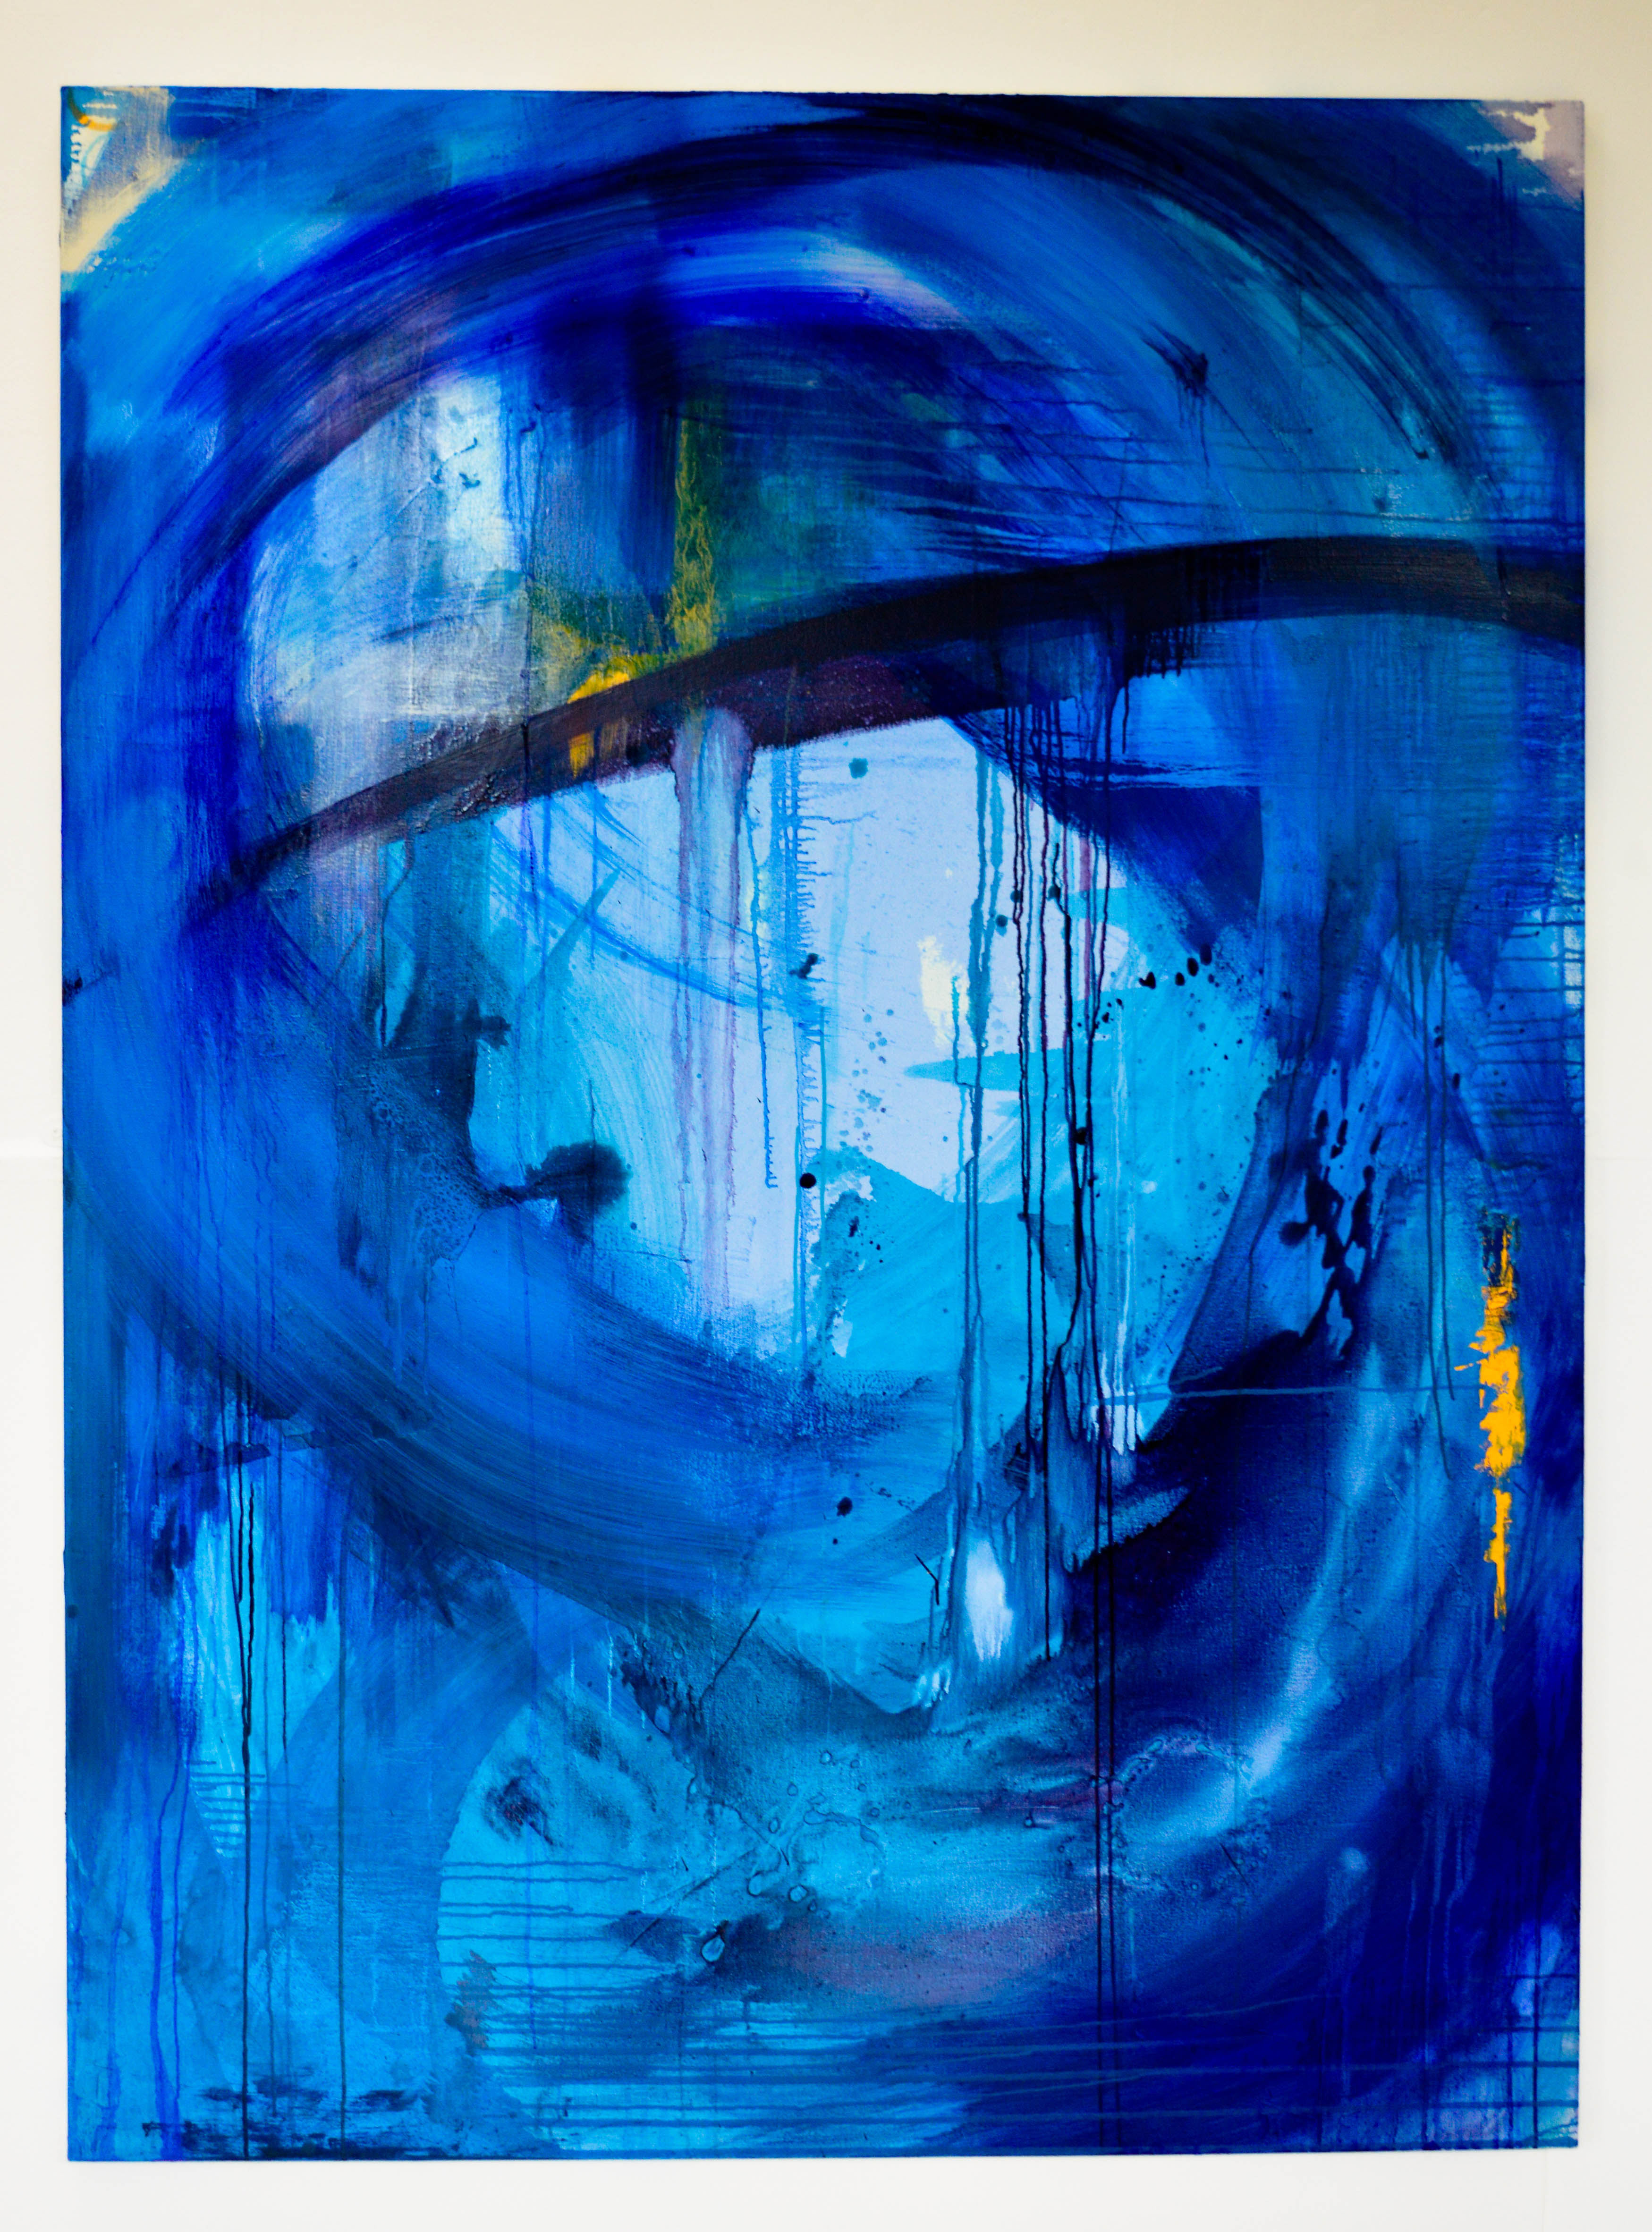 Blue Series 2.2. Oil on canvas. 182.9x134.5cm. For Sale.